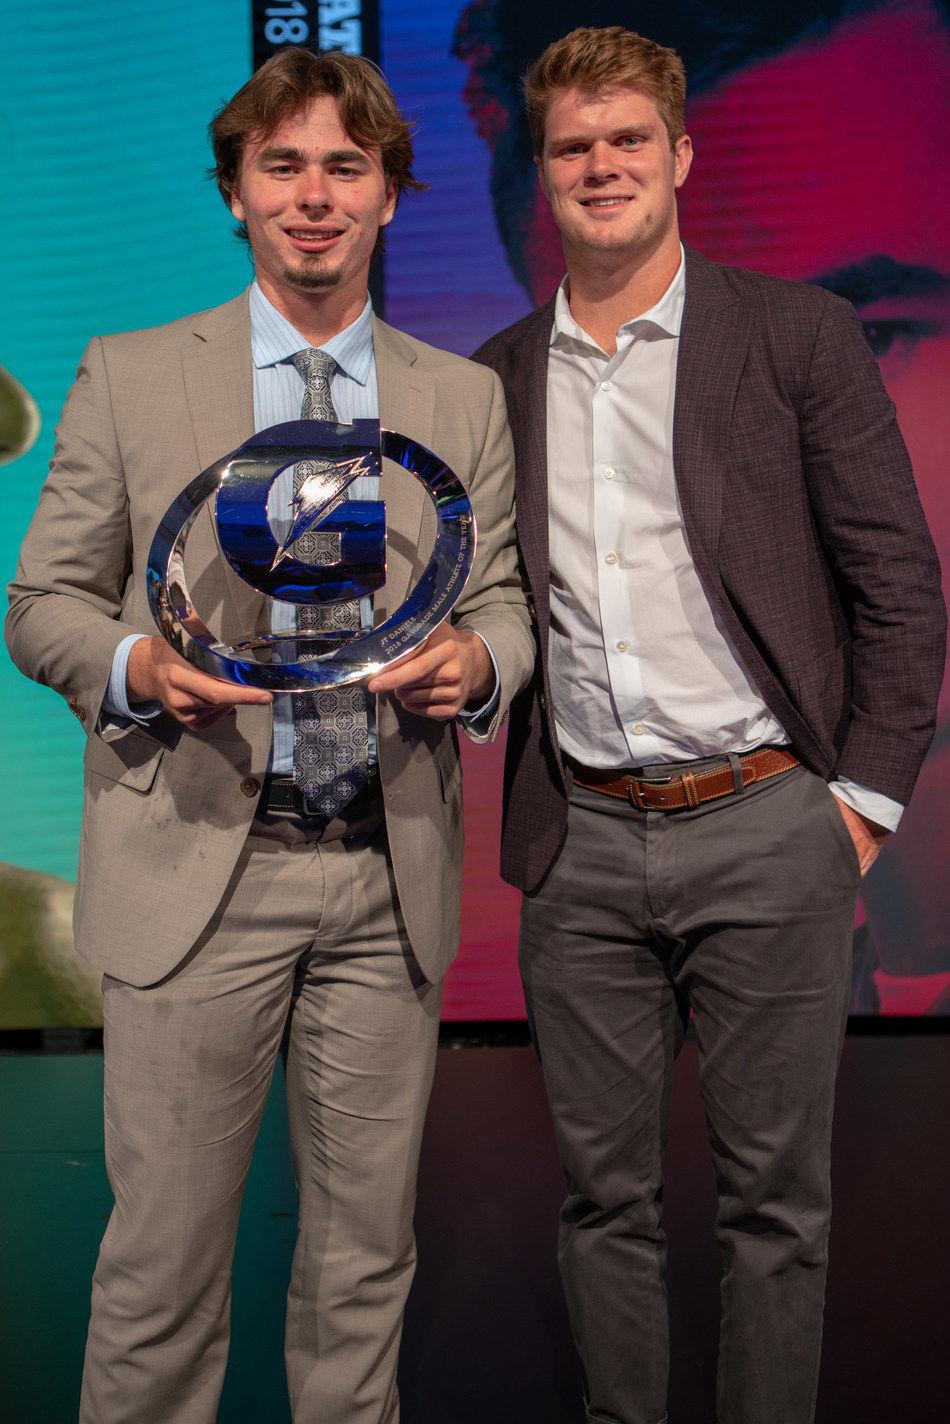 On Tuesday, July 17, 2018 in Los Angeles, California; 2018 Gatorade Male Athlete of the Year and incoming USC Quarterback JT Daniels poses with New York Jets Quarterback and former USC Quarterback Sam Darnold. Photo Credit/Gatorade